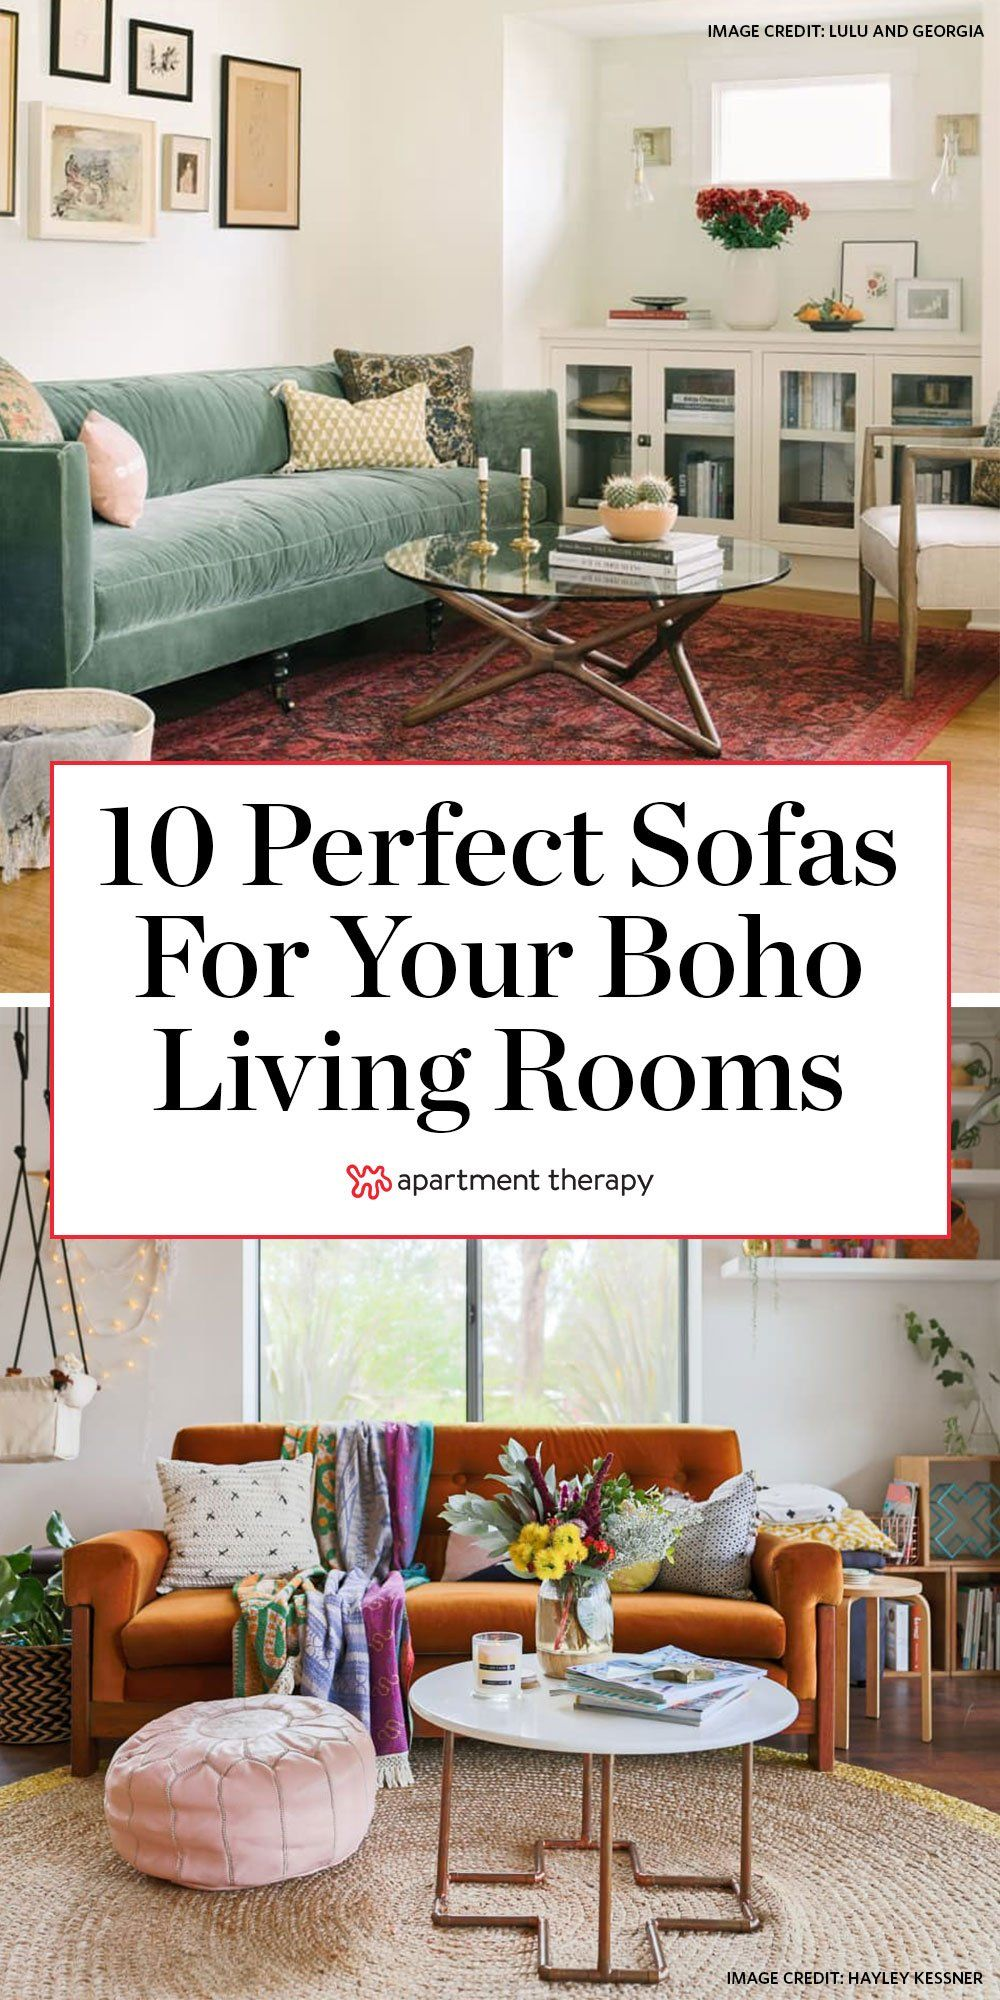 10 Sofas That Will Help You Achieve The Boho Living Room Of